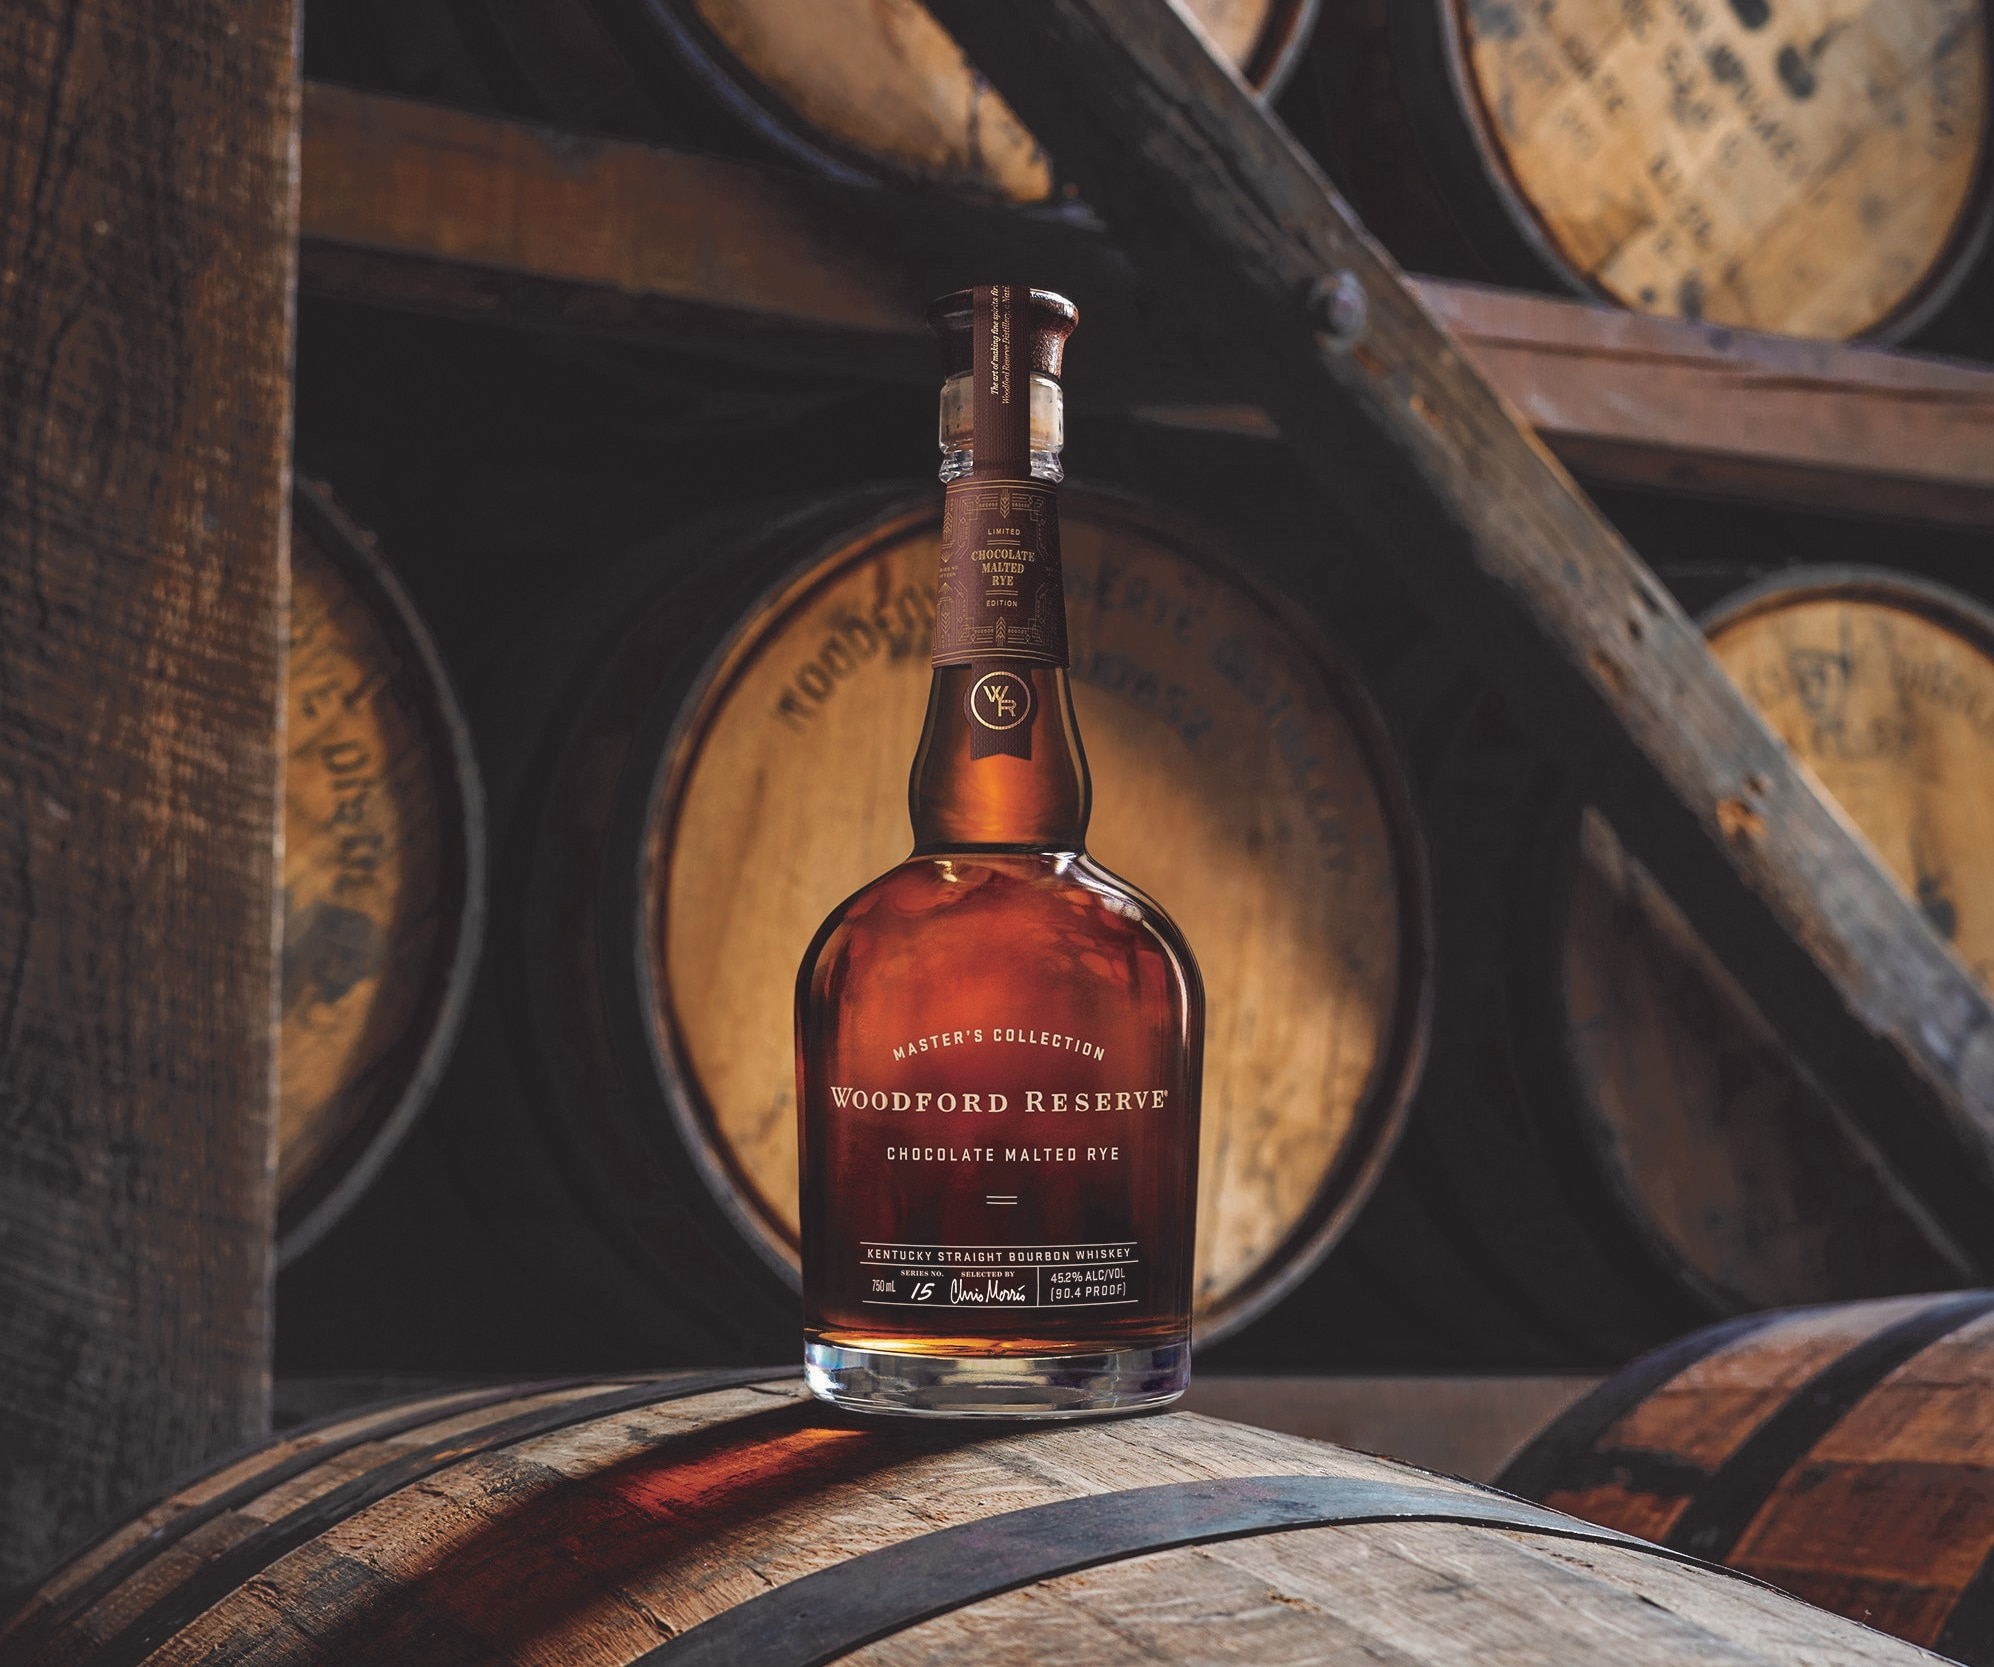 Woodford Reserve - 2019 Master's Collection Chocolate Malted Rye Bourbon